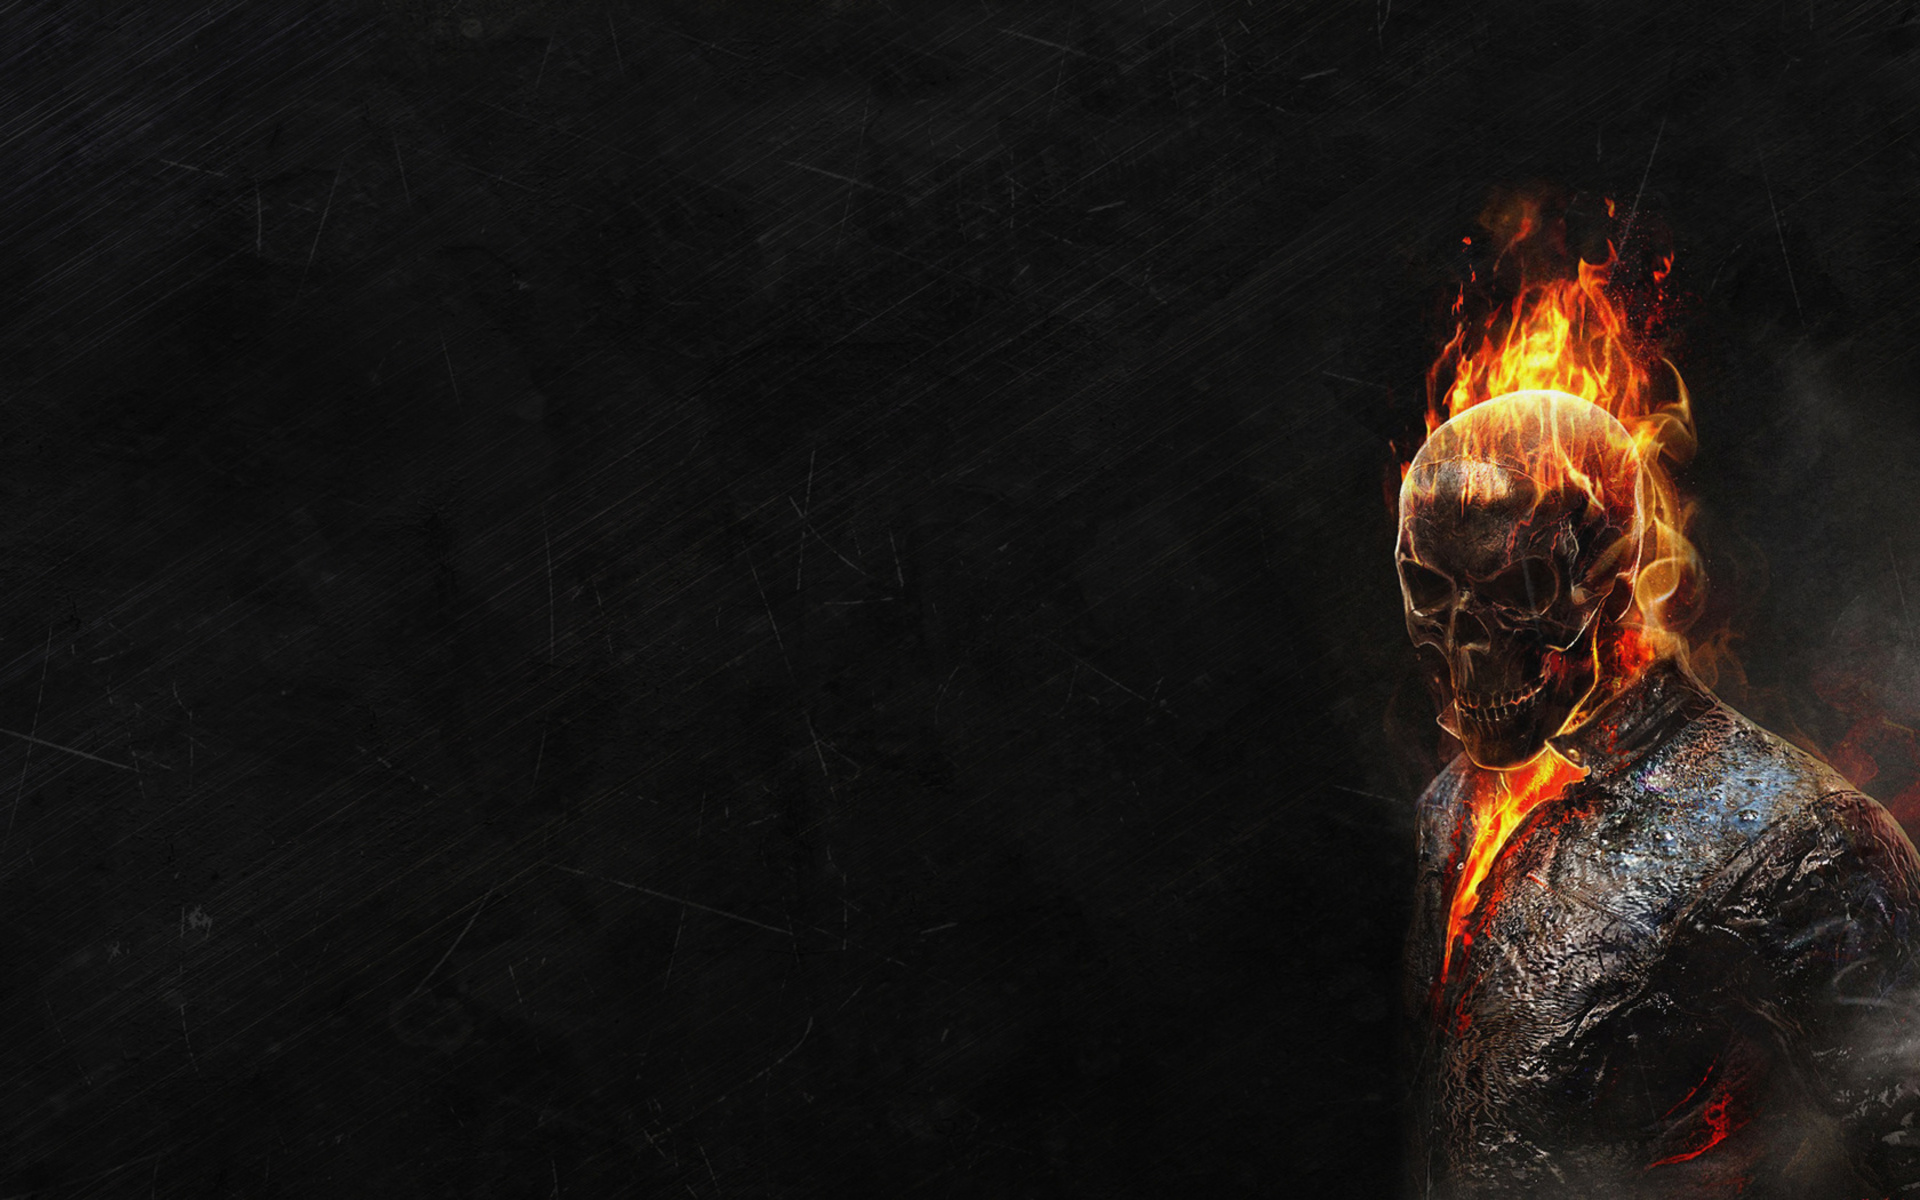 Ghost Rider HD Wallpapers Black background scary face 1920x1200